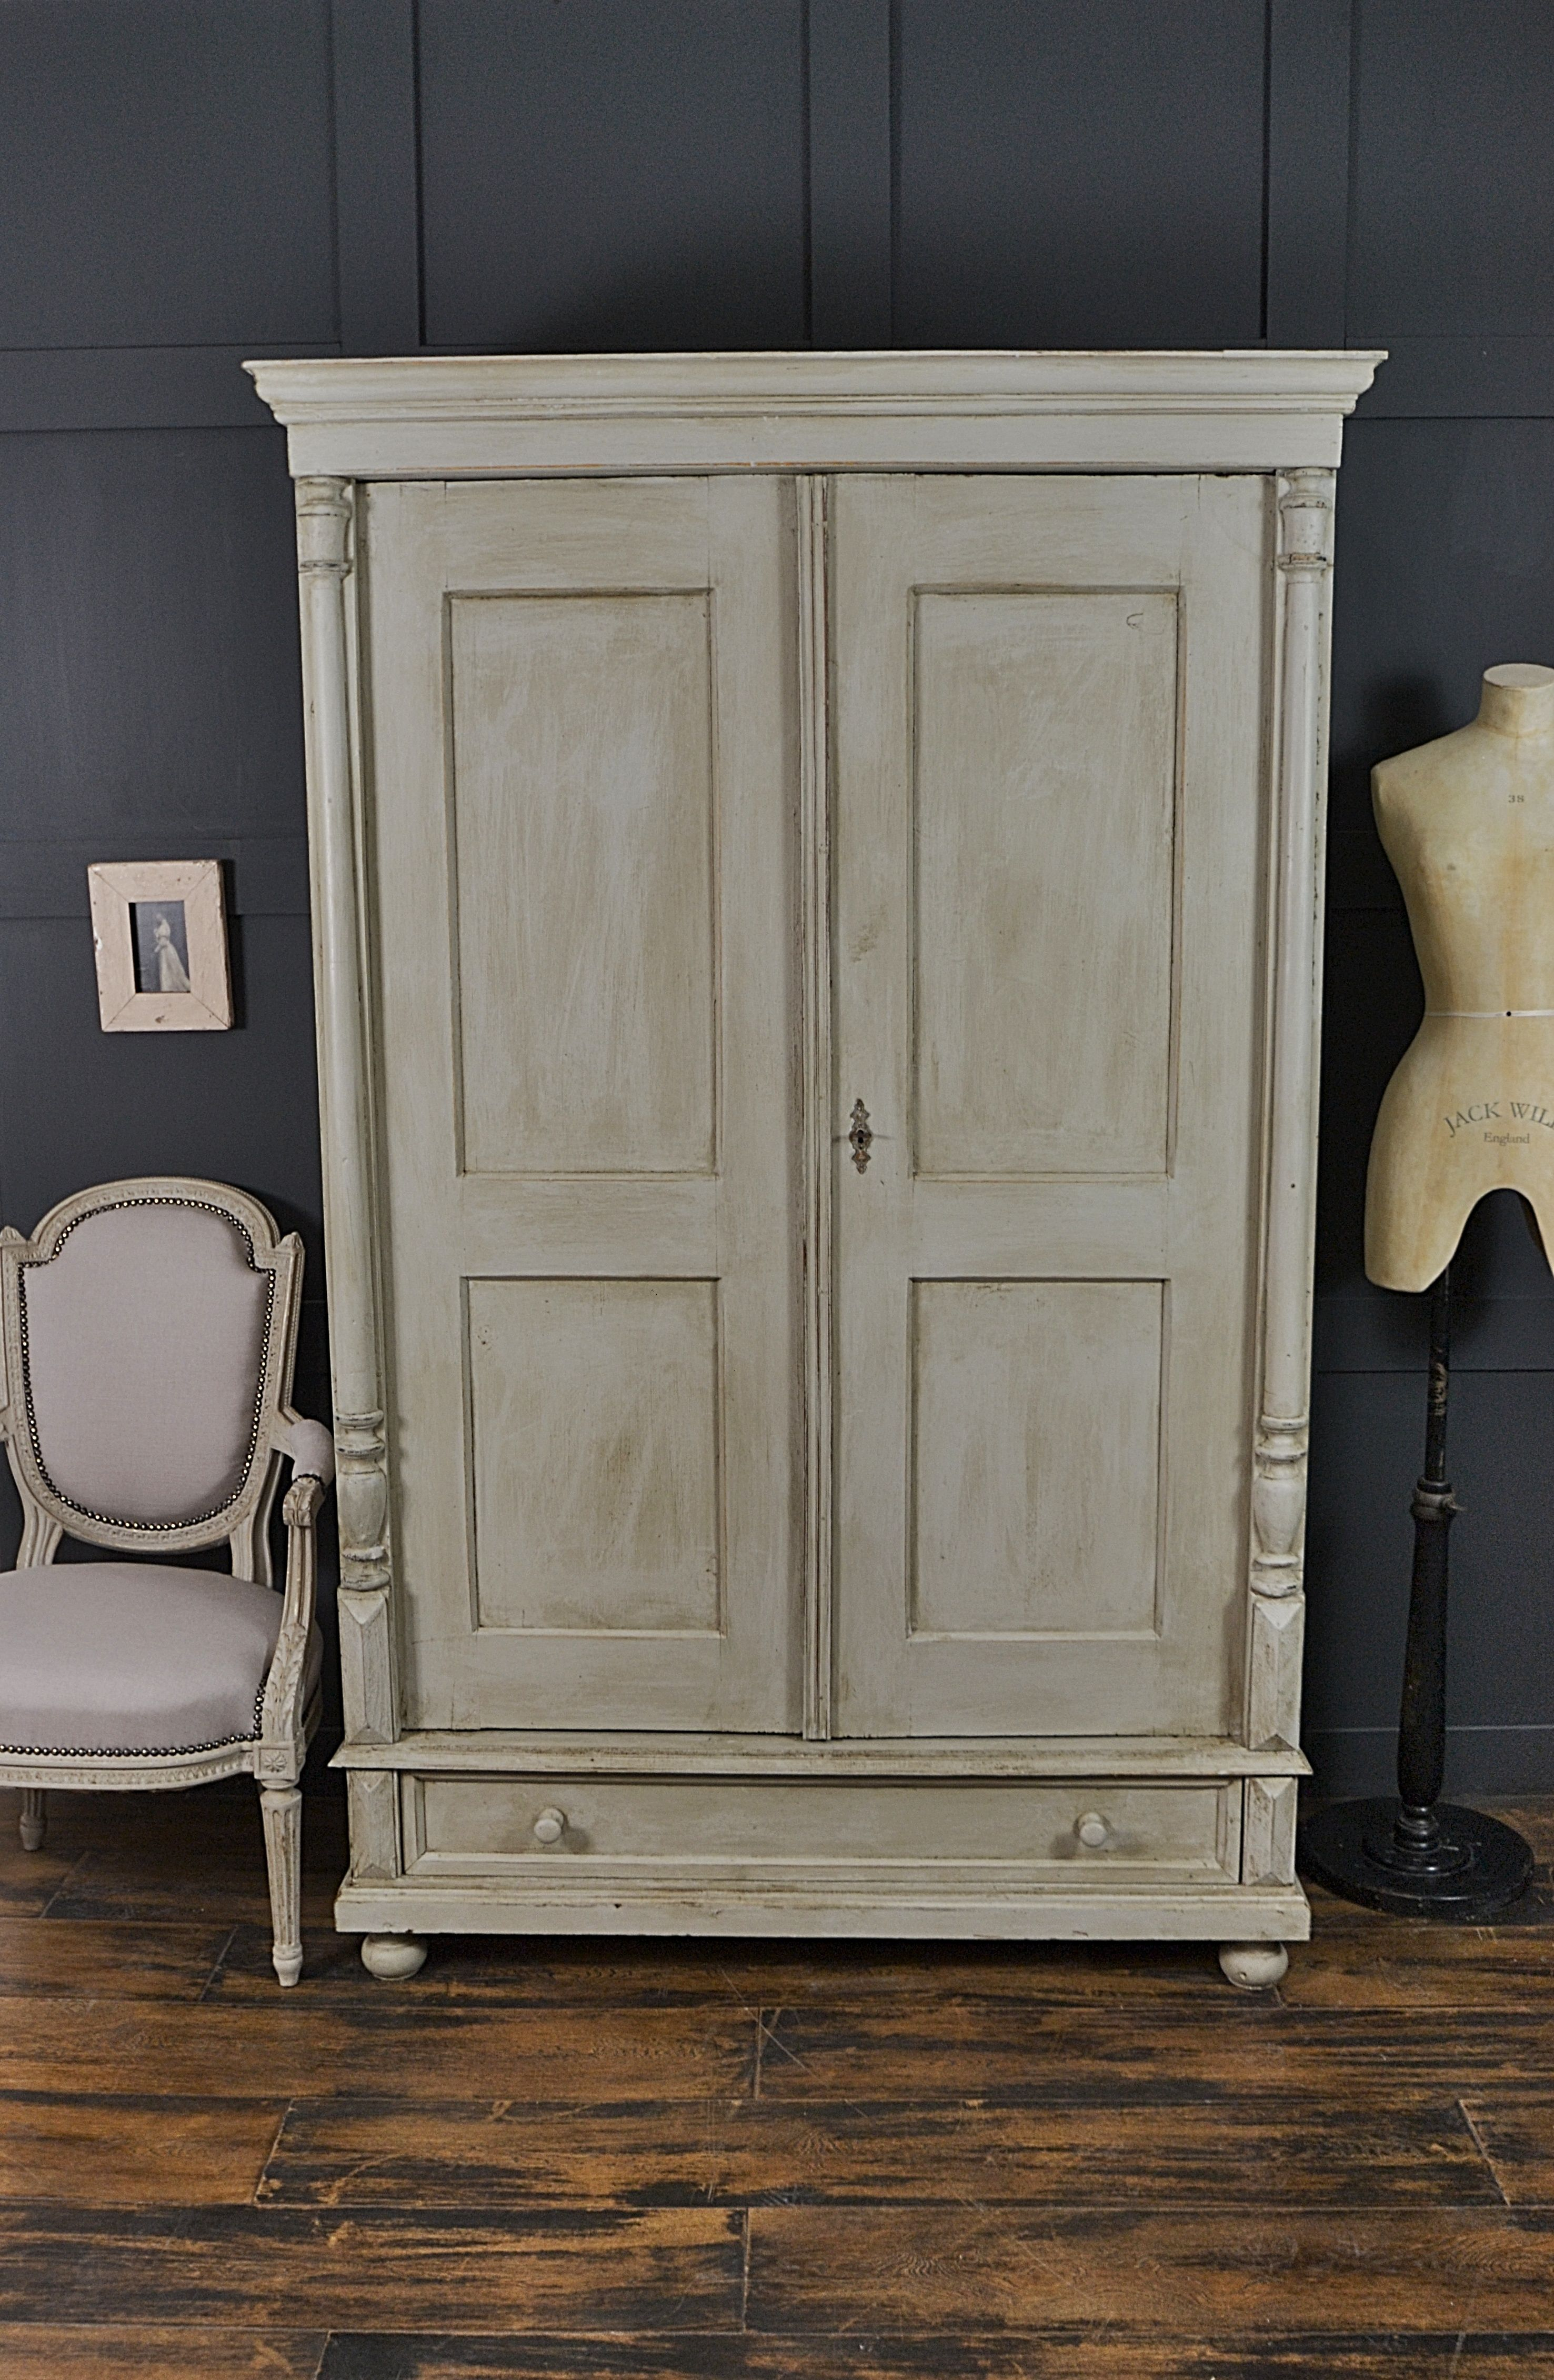 This Antique Wardrobe From Holland Has A Truly Rustic Look With Dark Wax Lied To